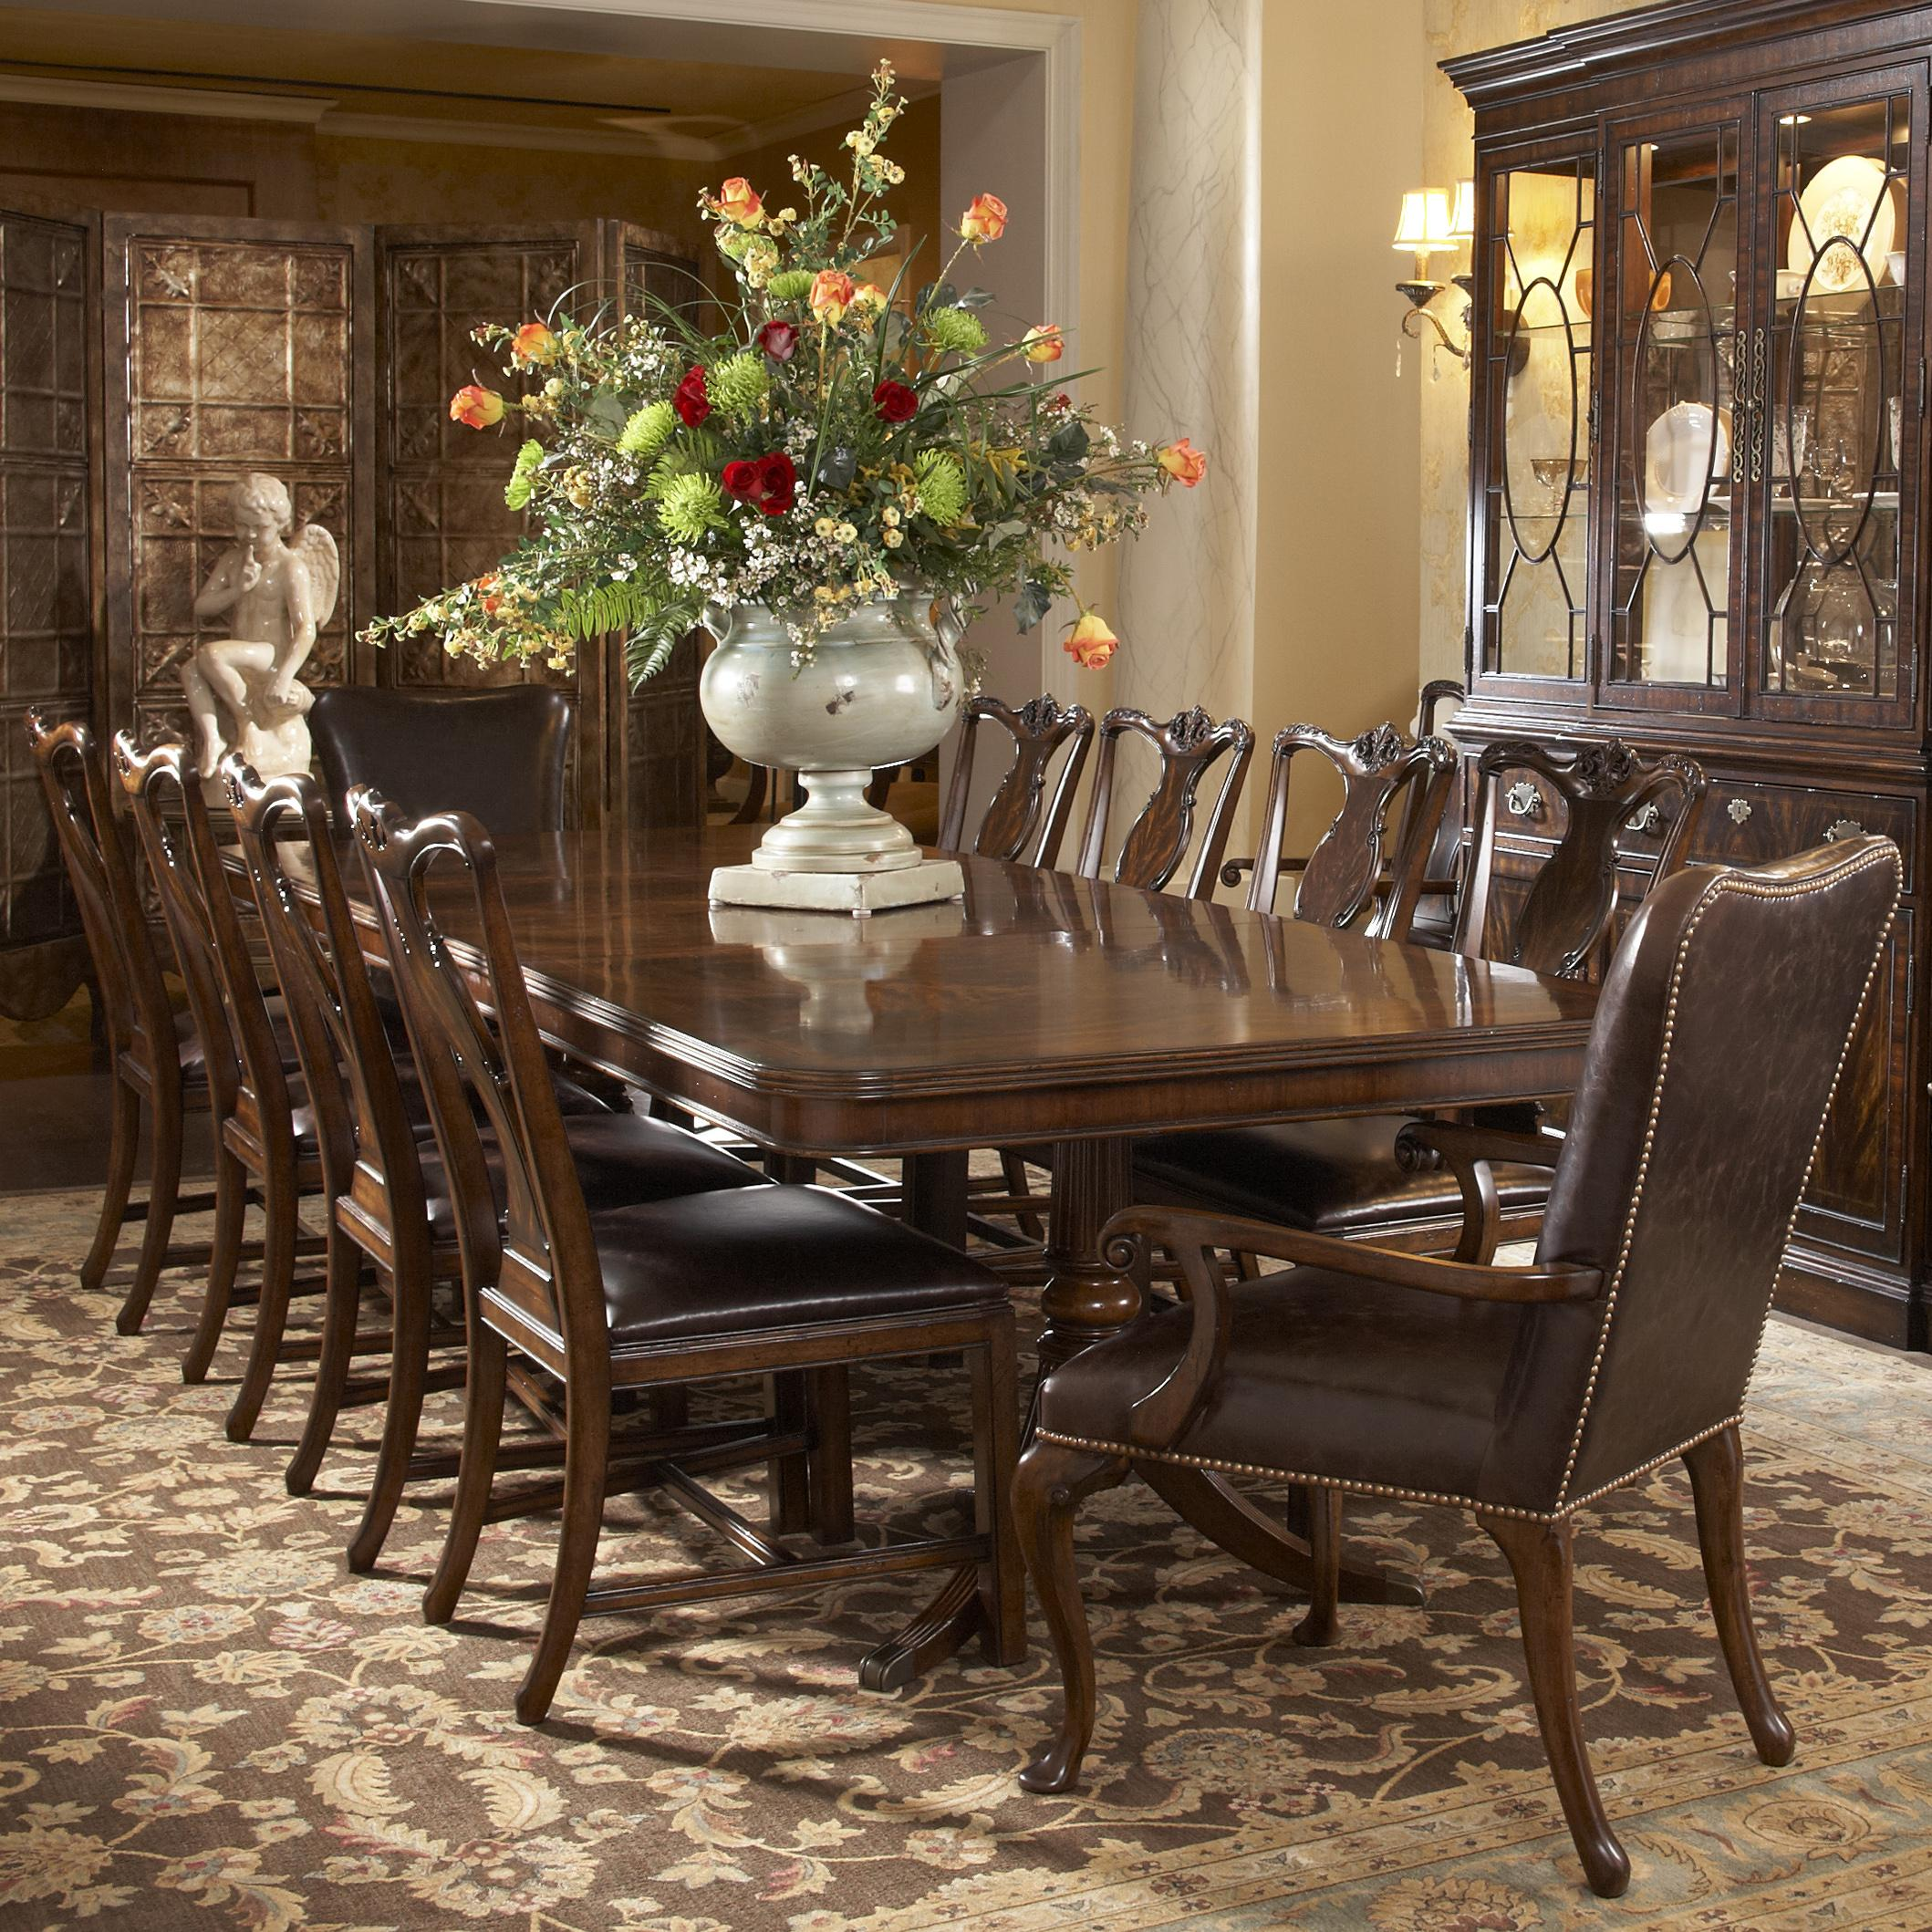 Leather Dining Room Chairs 11 Piece Double Pedestal Dining Table And Splat Back Side Chair